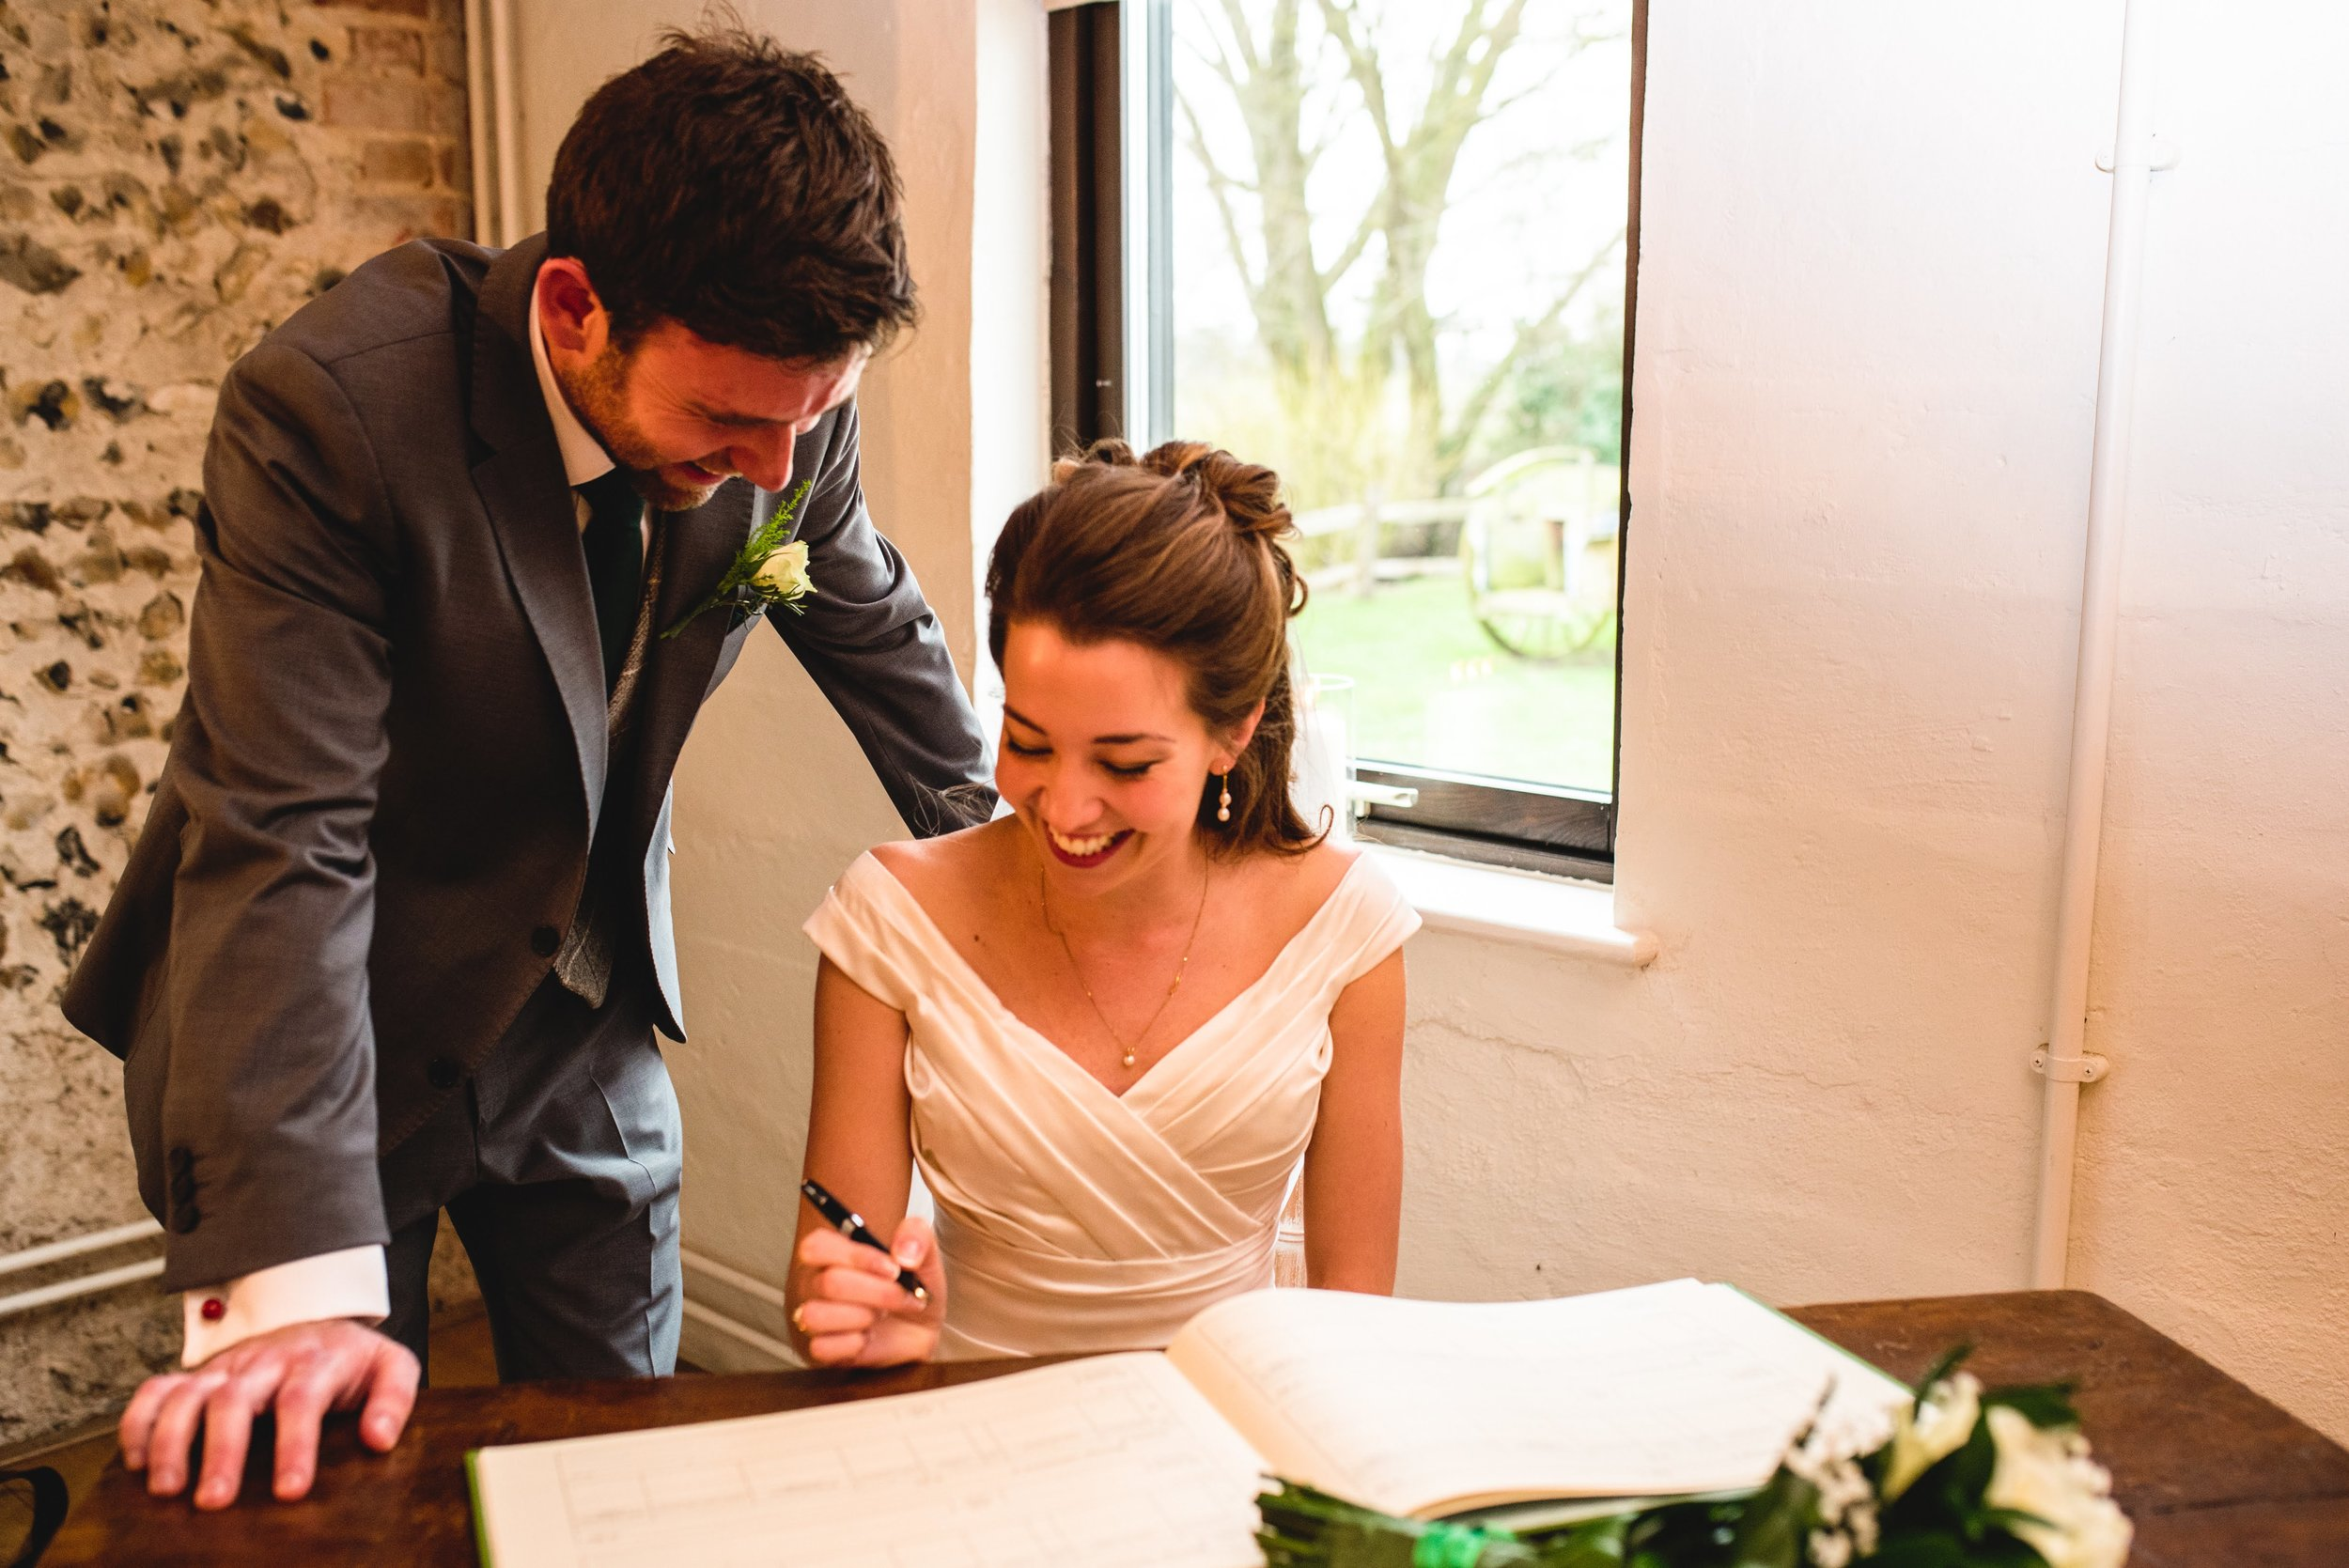 Julia and Ciaran-Colour-16February2019-227-min.jpg